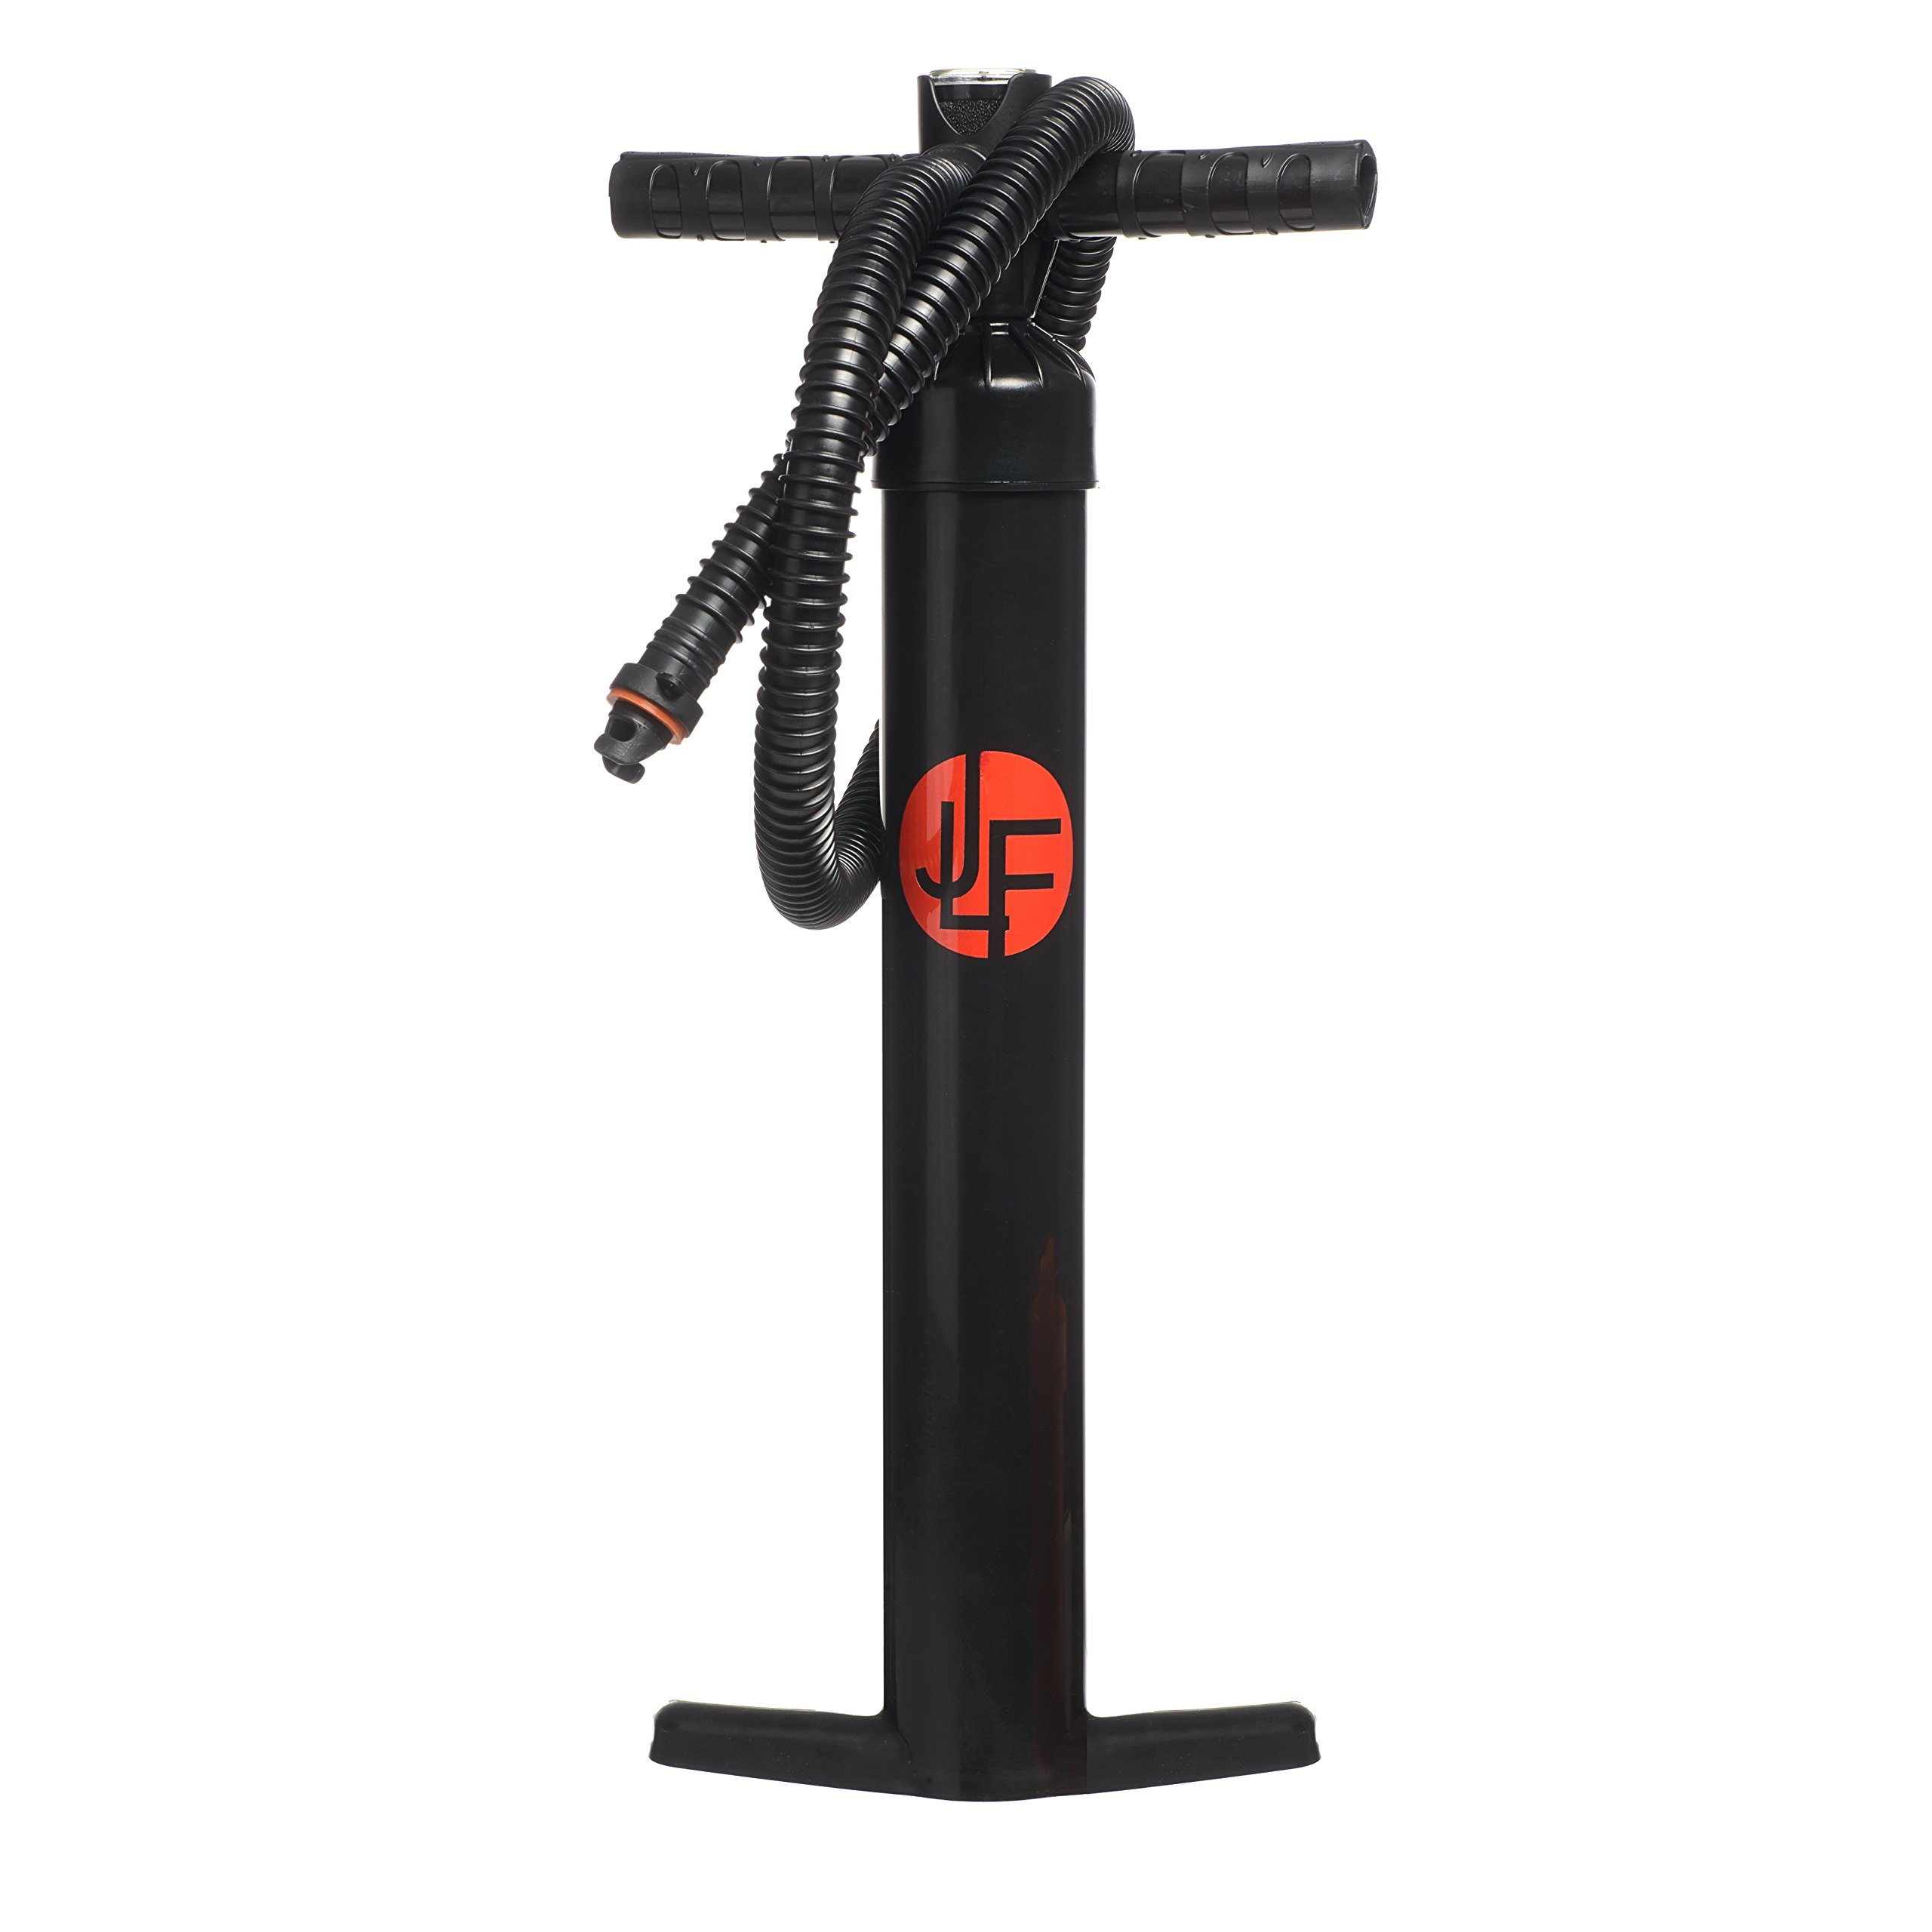 JLF | Dual Action Hand Pump with Pressure Gauge, Hose and Air Valve Adapter | for Inflatable Stand Up Paddle Boards | for 9' 10' 11' 12' SUP Packages | Inflate 12 psi, 15 psi, 20 psi by JLF (Image #1)